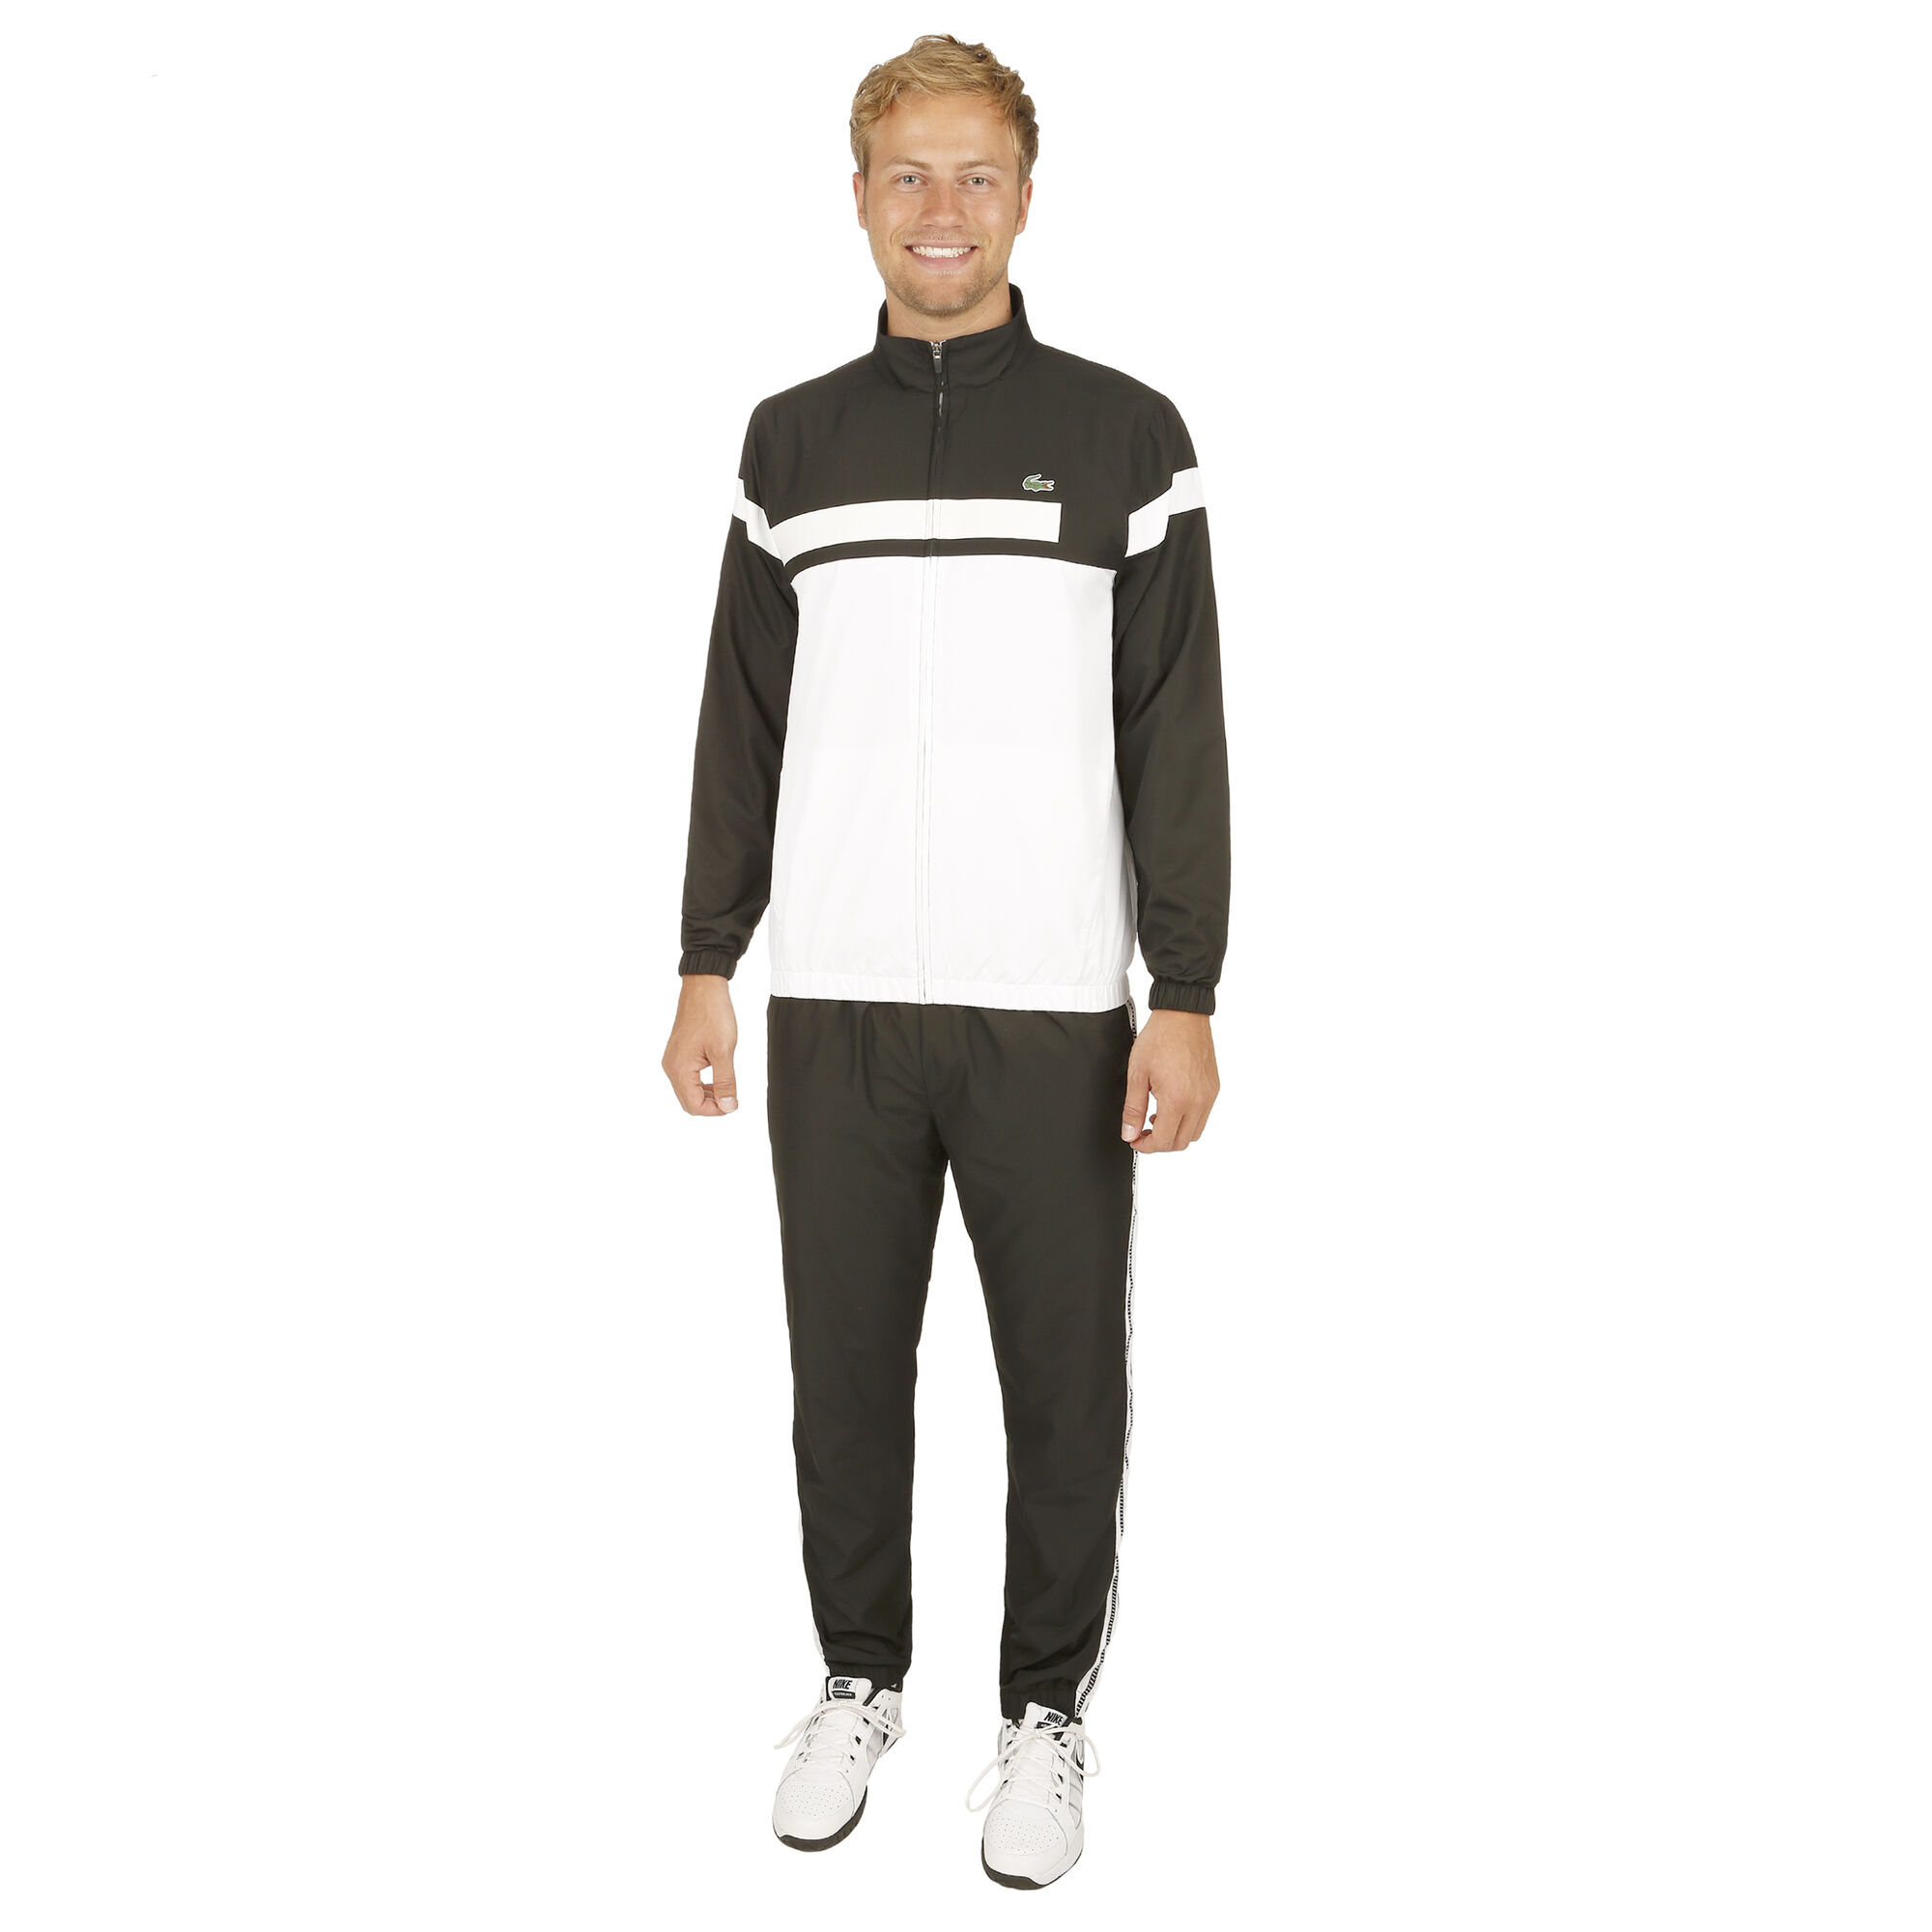 272813cca Lacoste Chándal Hombres - Blanco, Negro compra online | Tennis-Point